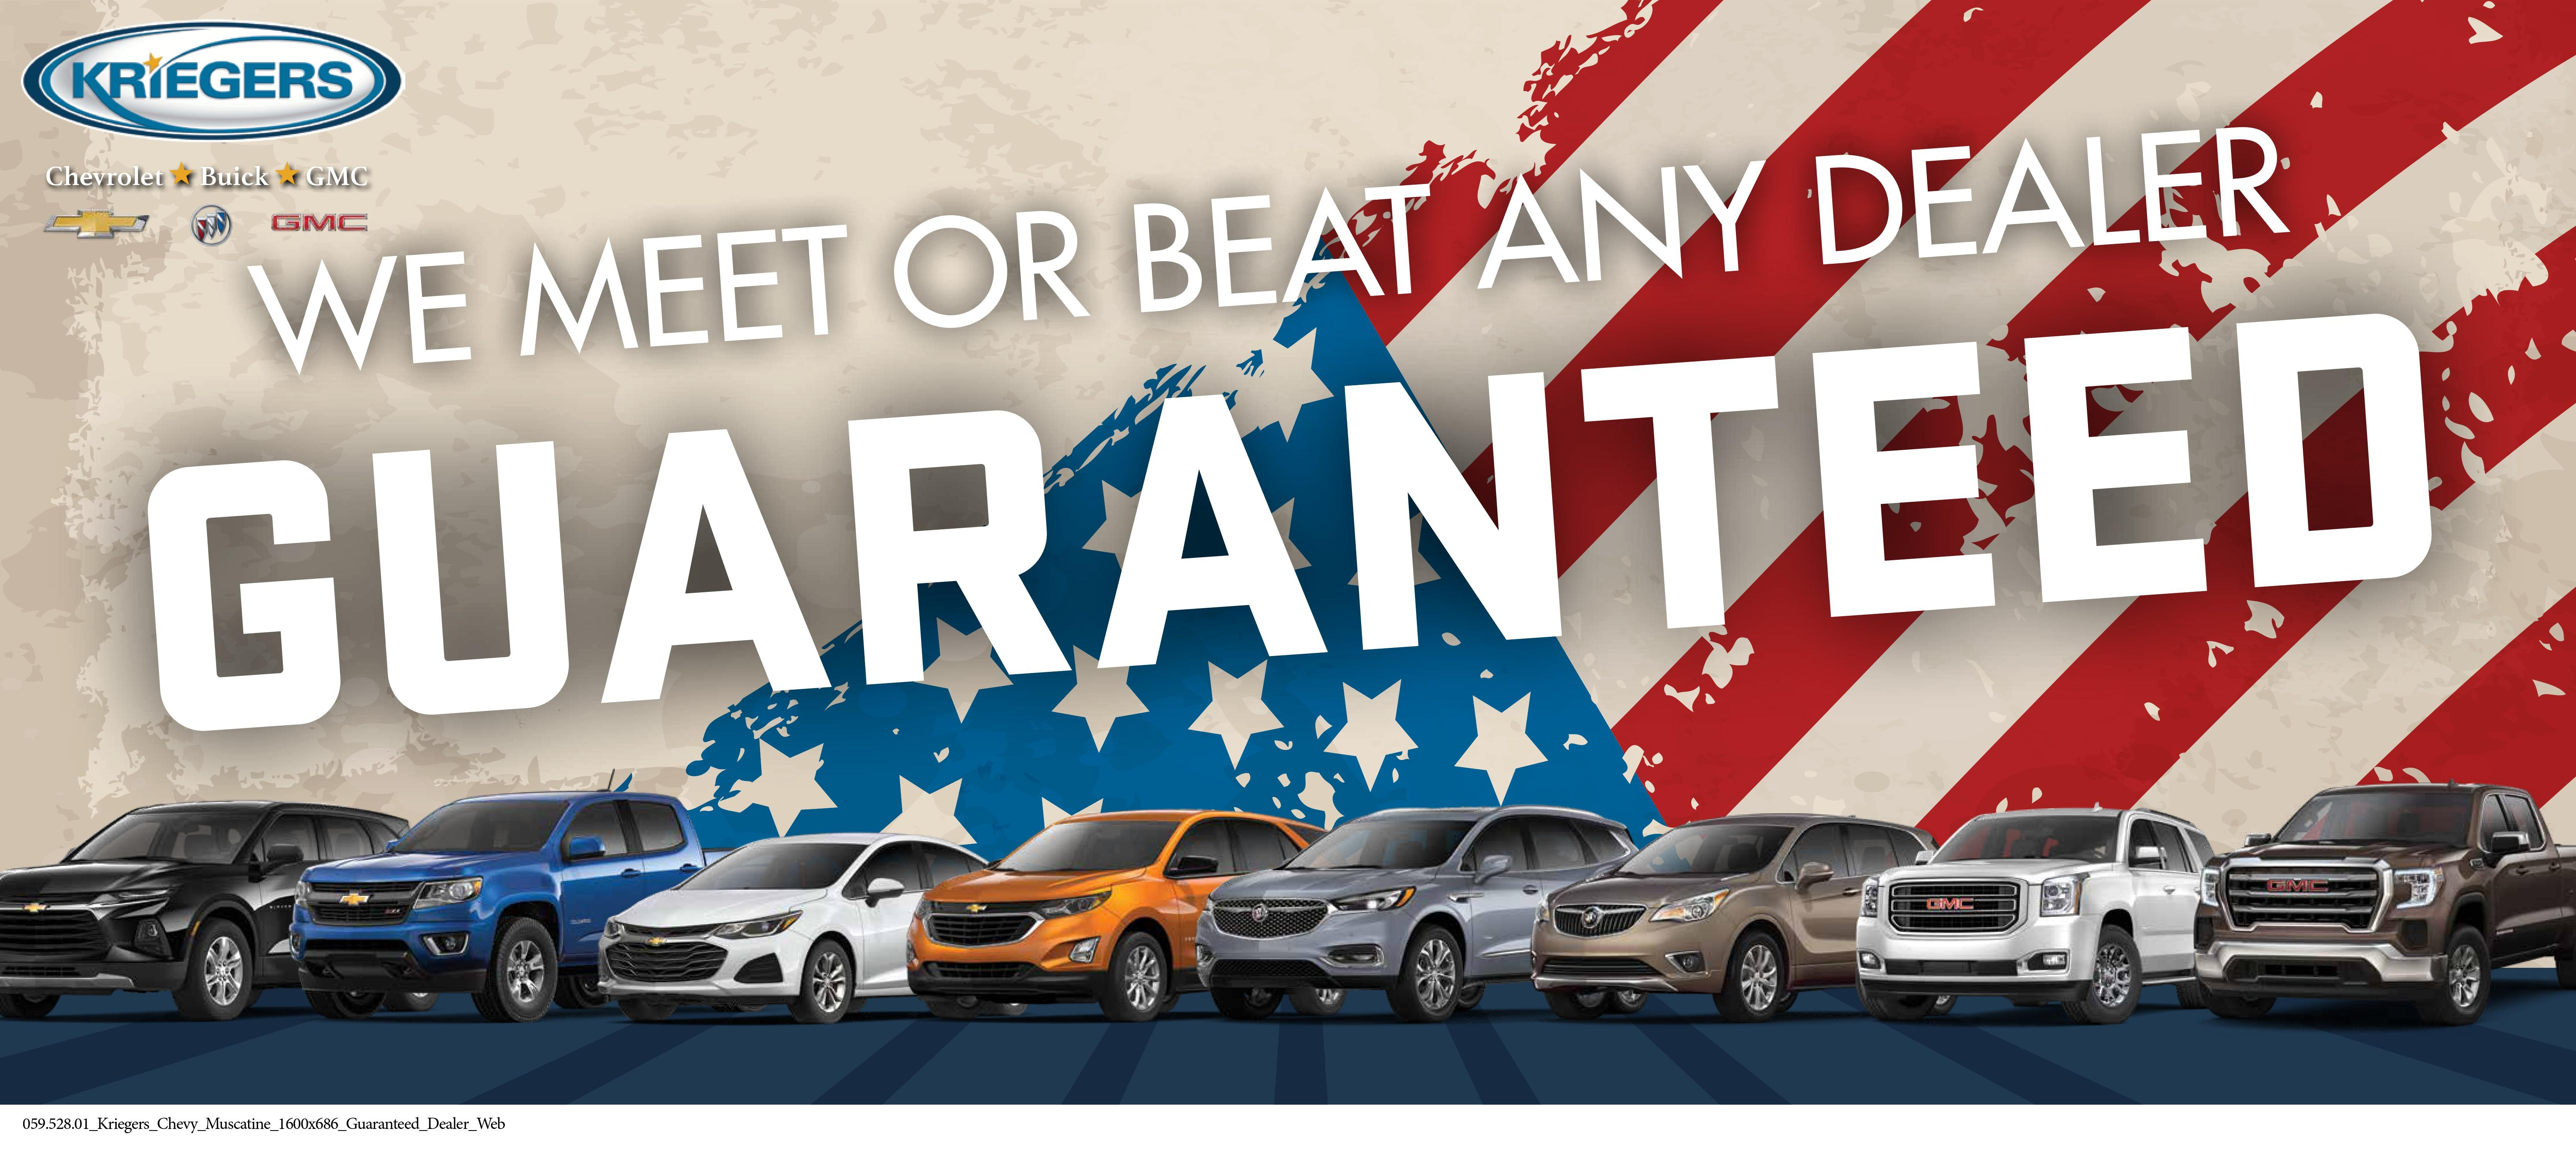 Krieger Auto Group | Iowa Auto Dealer located in Muscatine and DeWitt